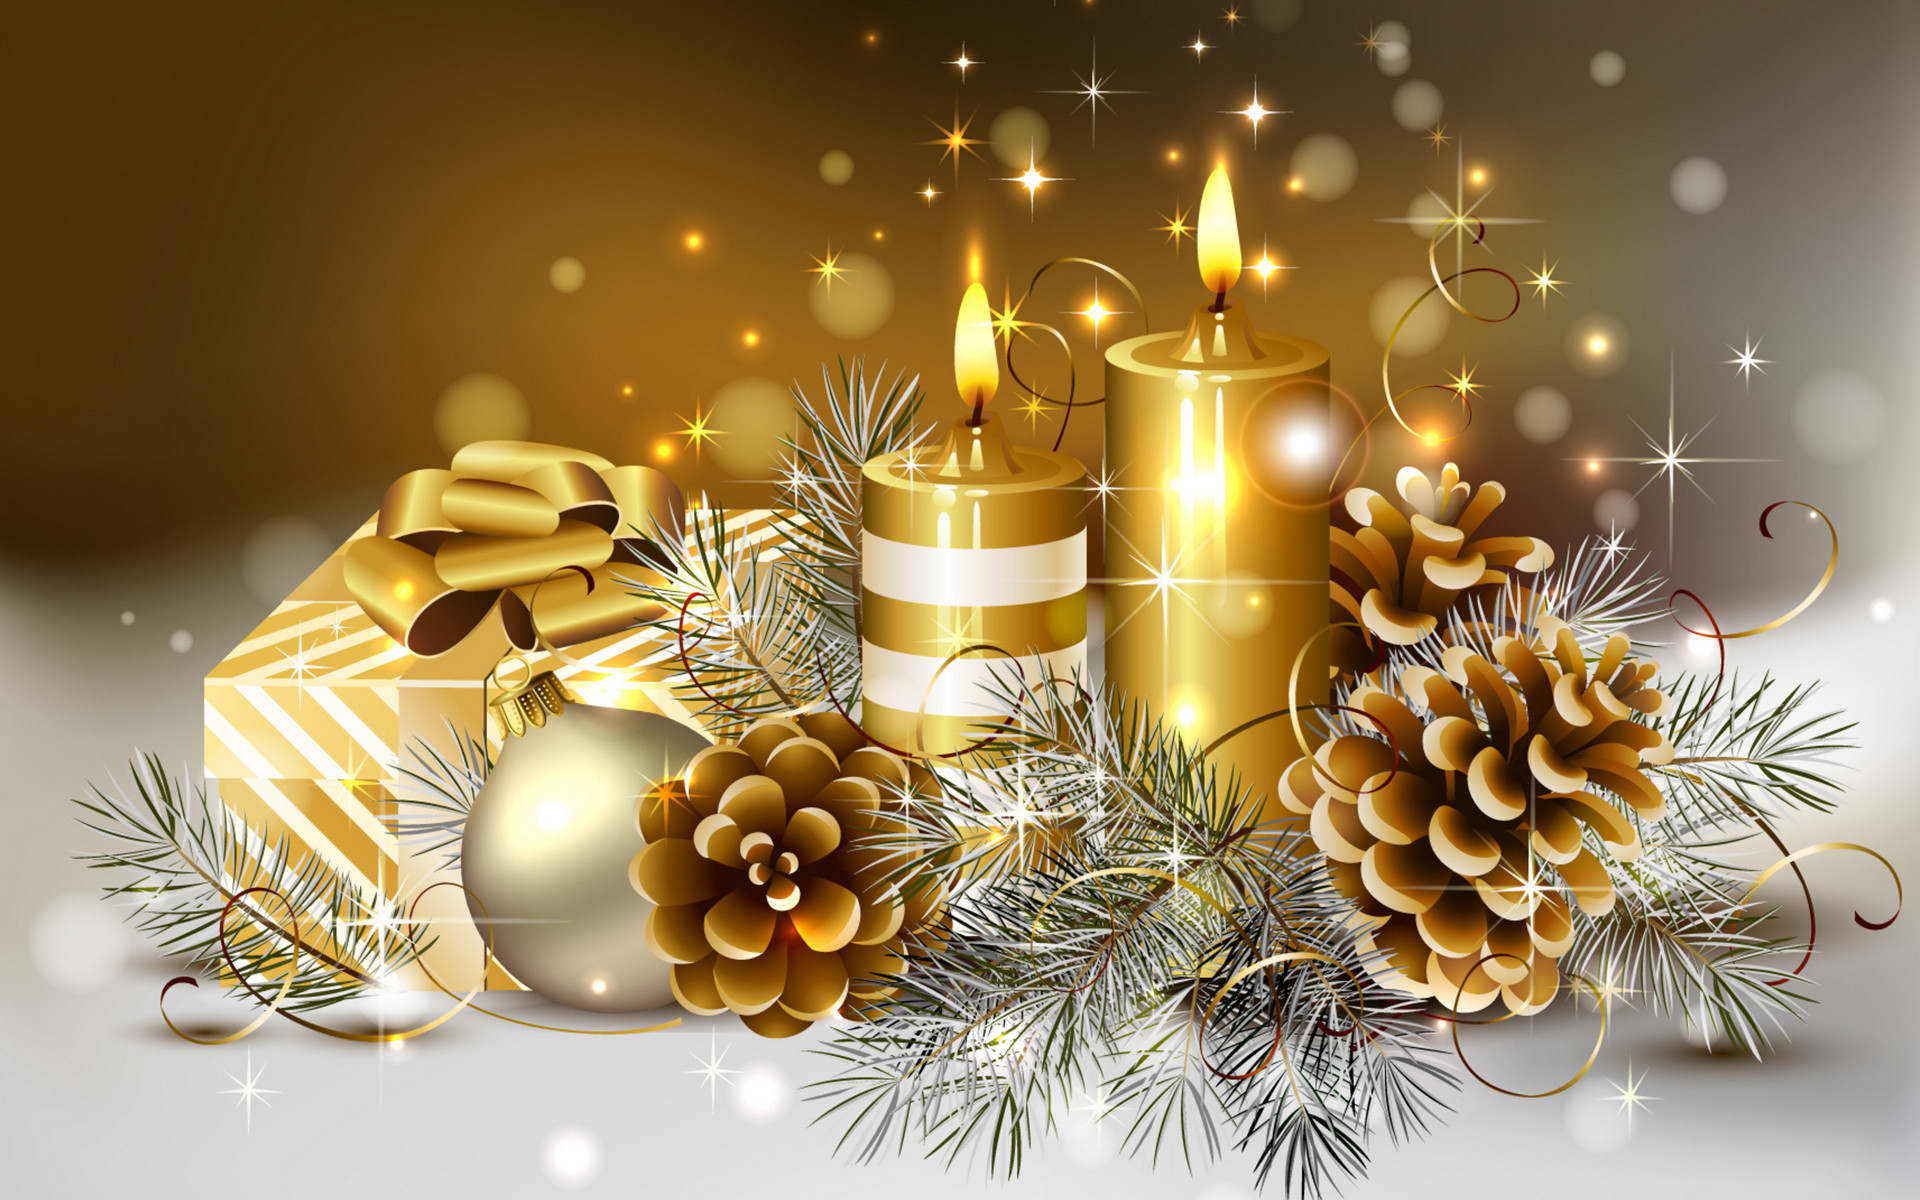 Res: 1920x1200, New free hd wallpaperss | happy merry christmas 1080p hd wallpapers